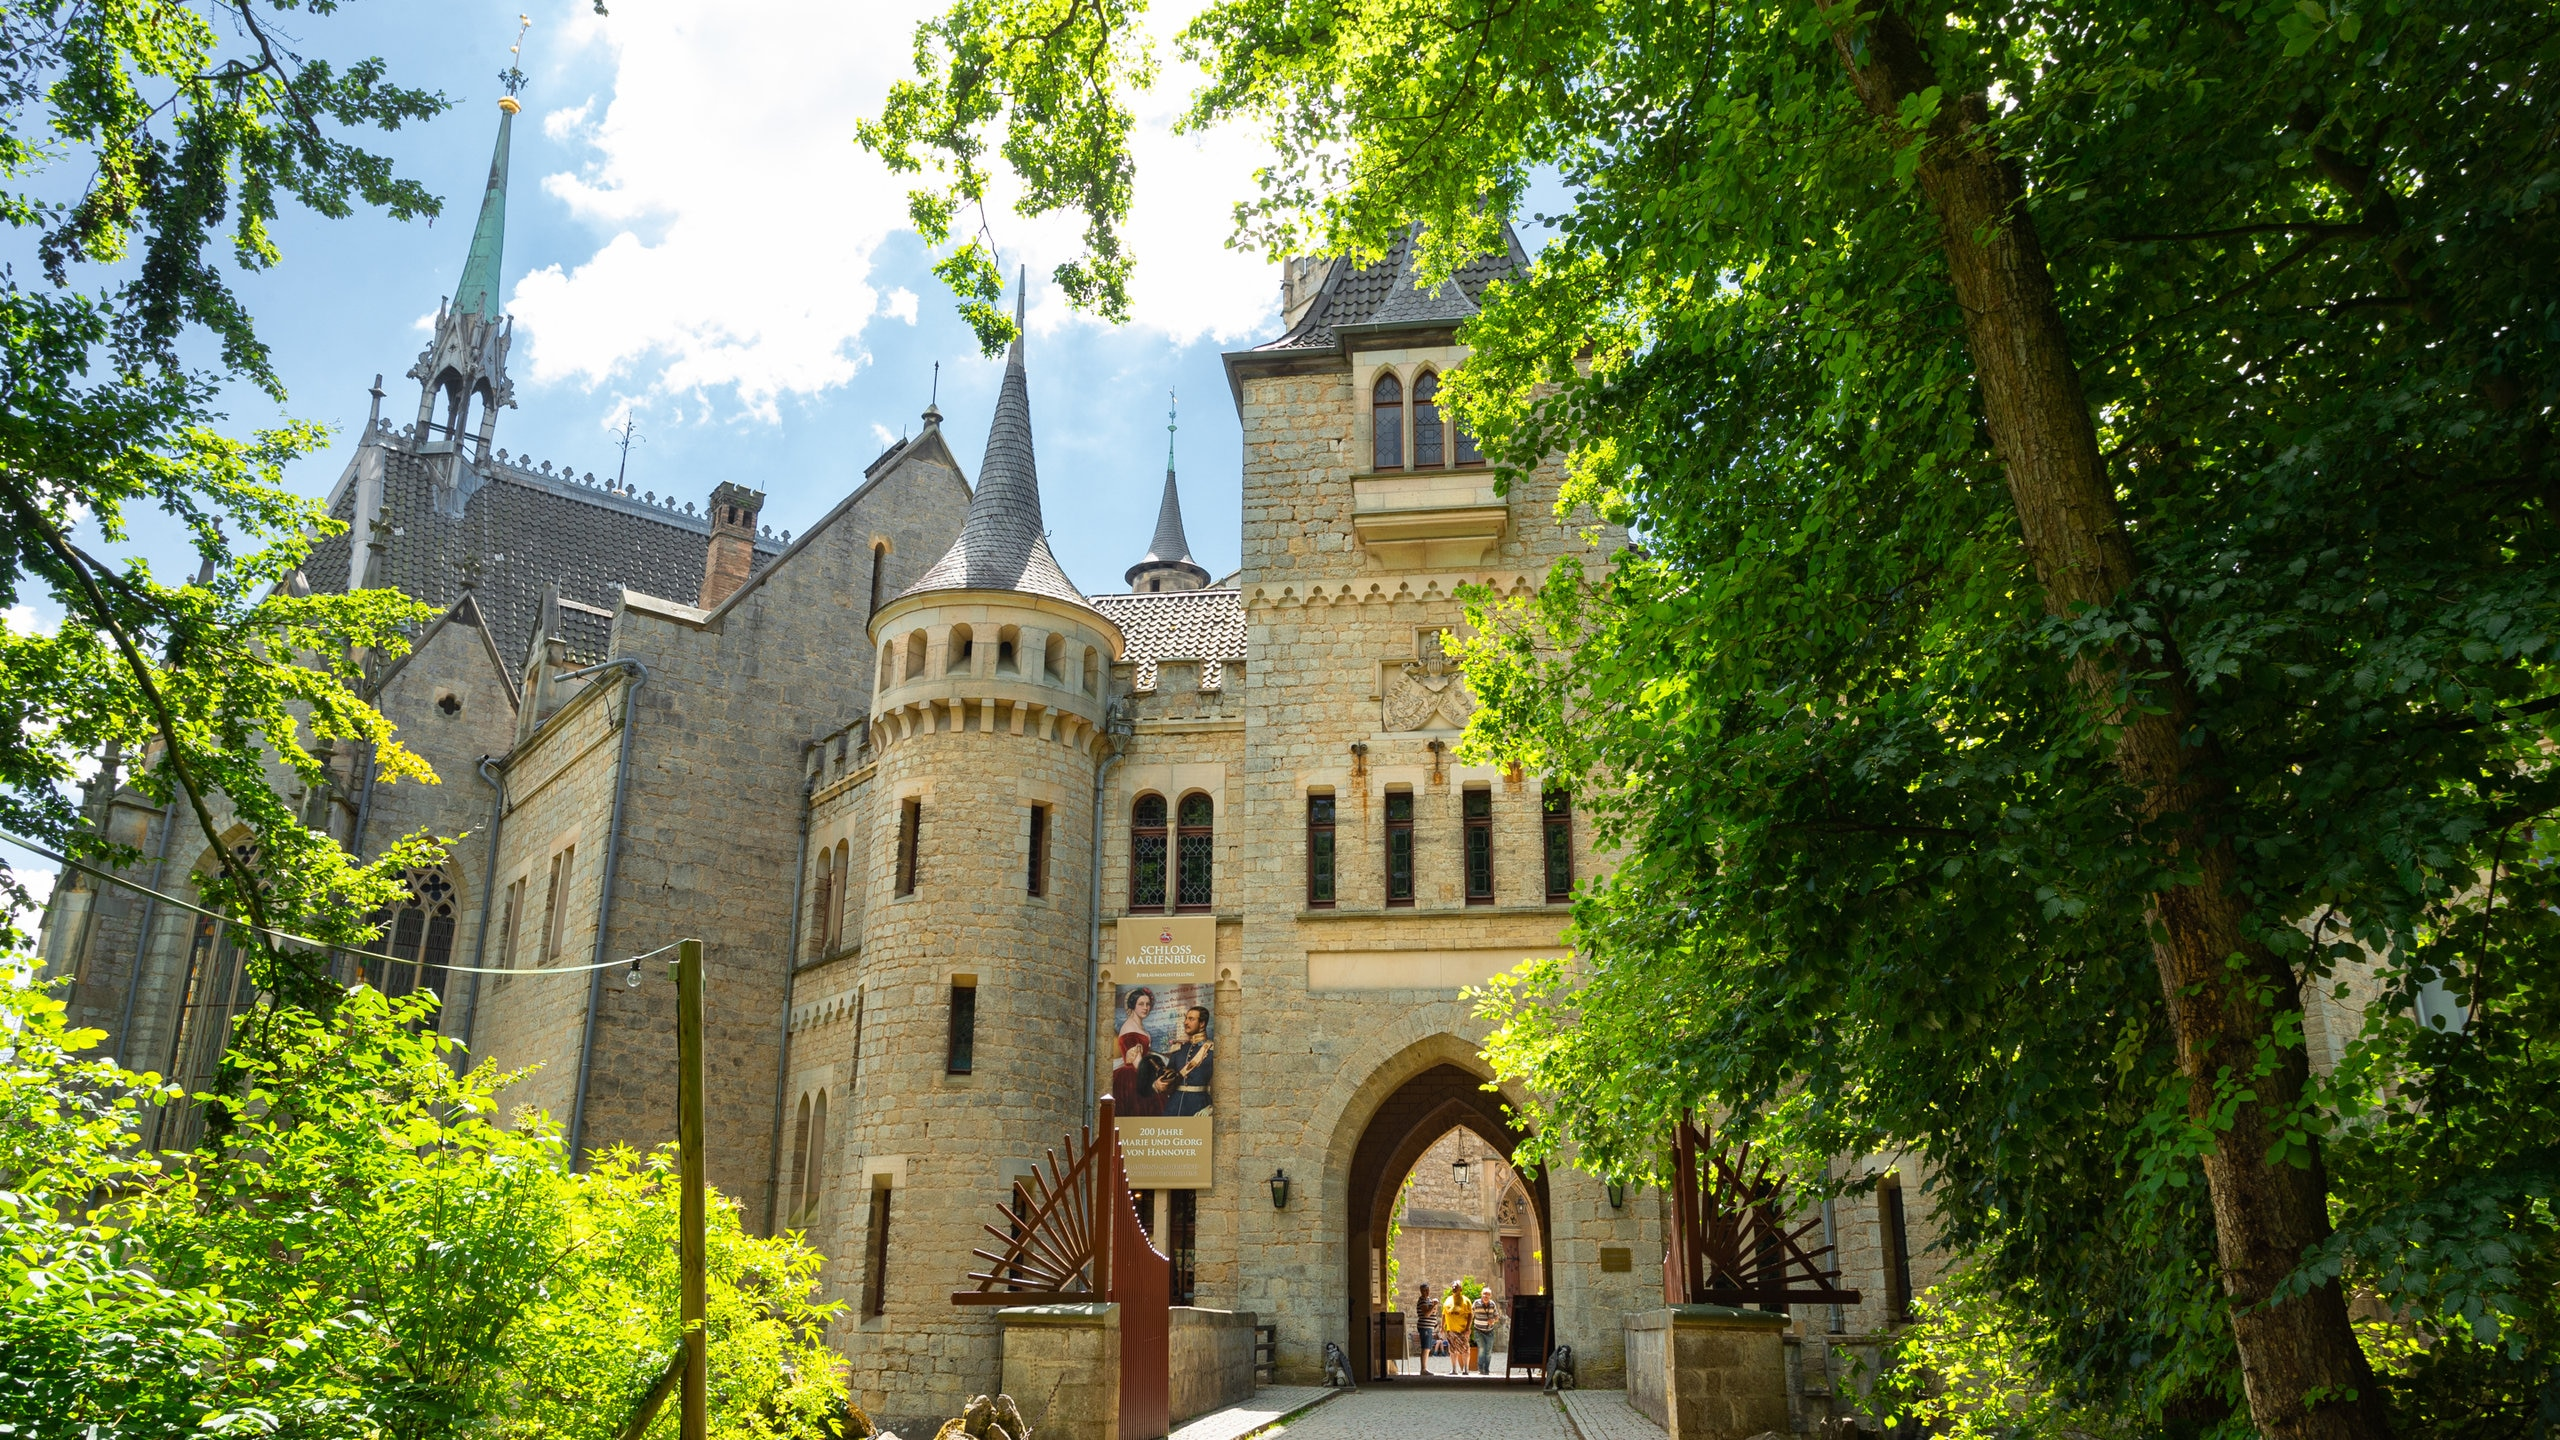 You can learn about the history of Pattensen with a trip to Marienburg Castle. Make time to visit the spas and churches while you're in the area.